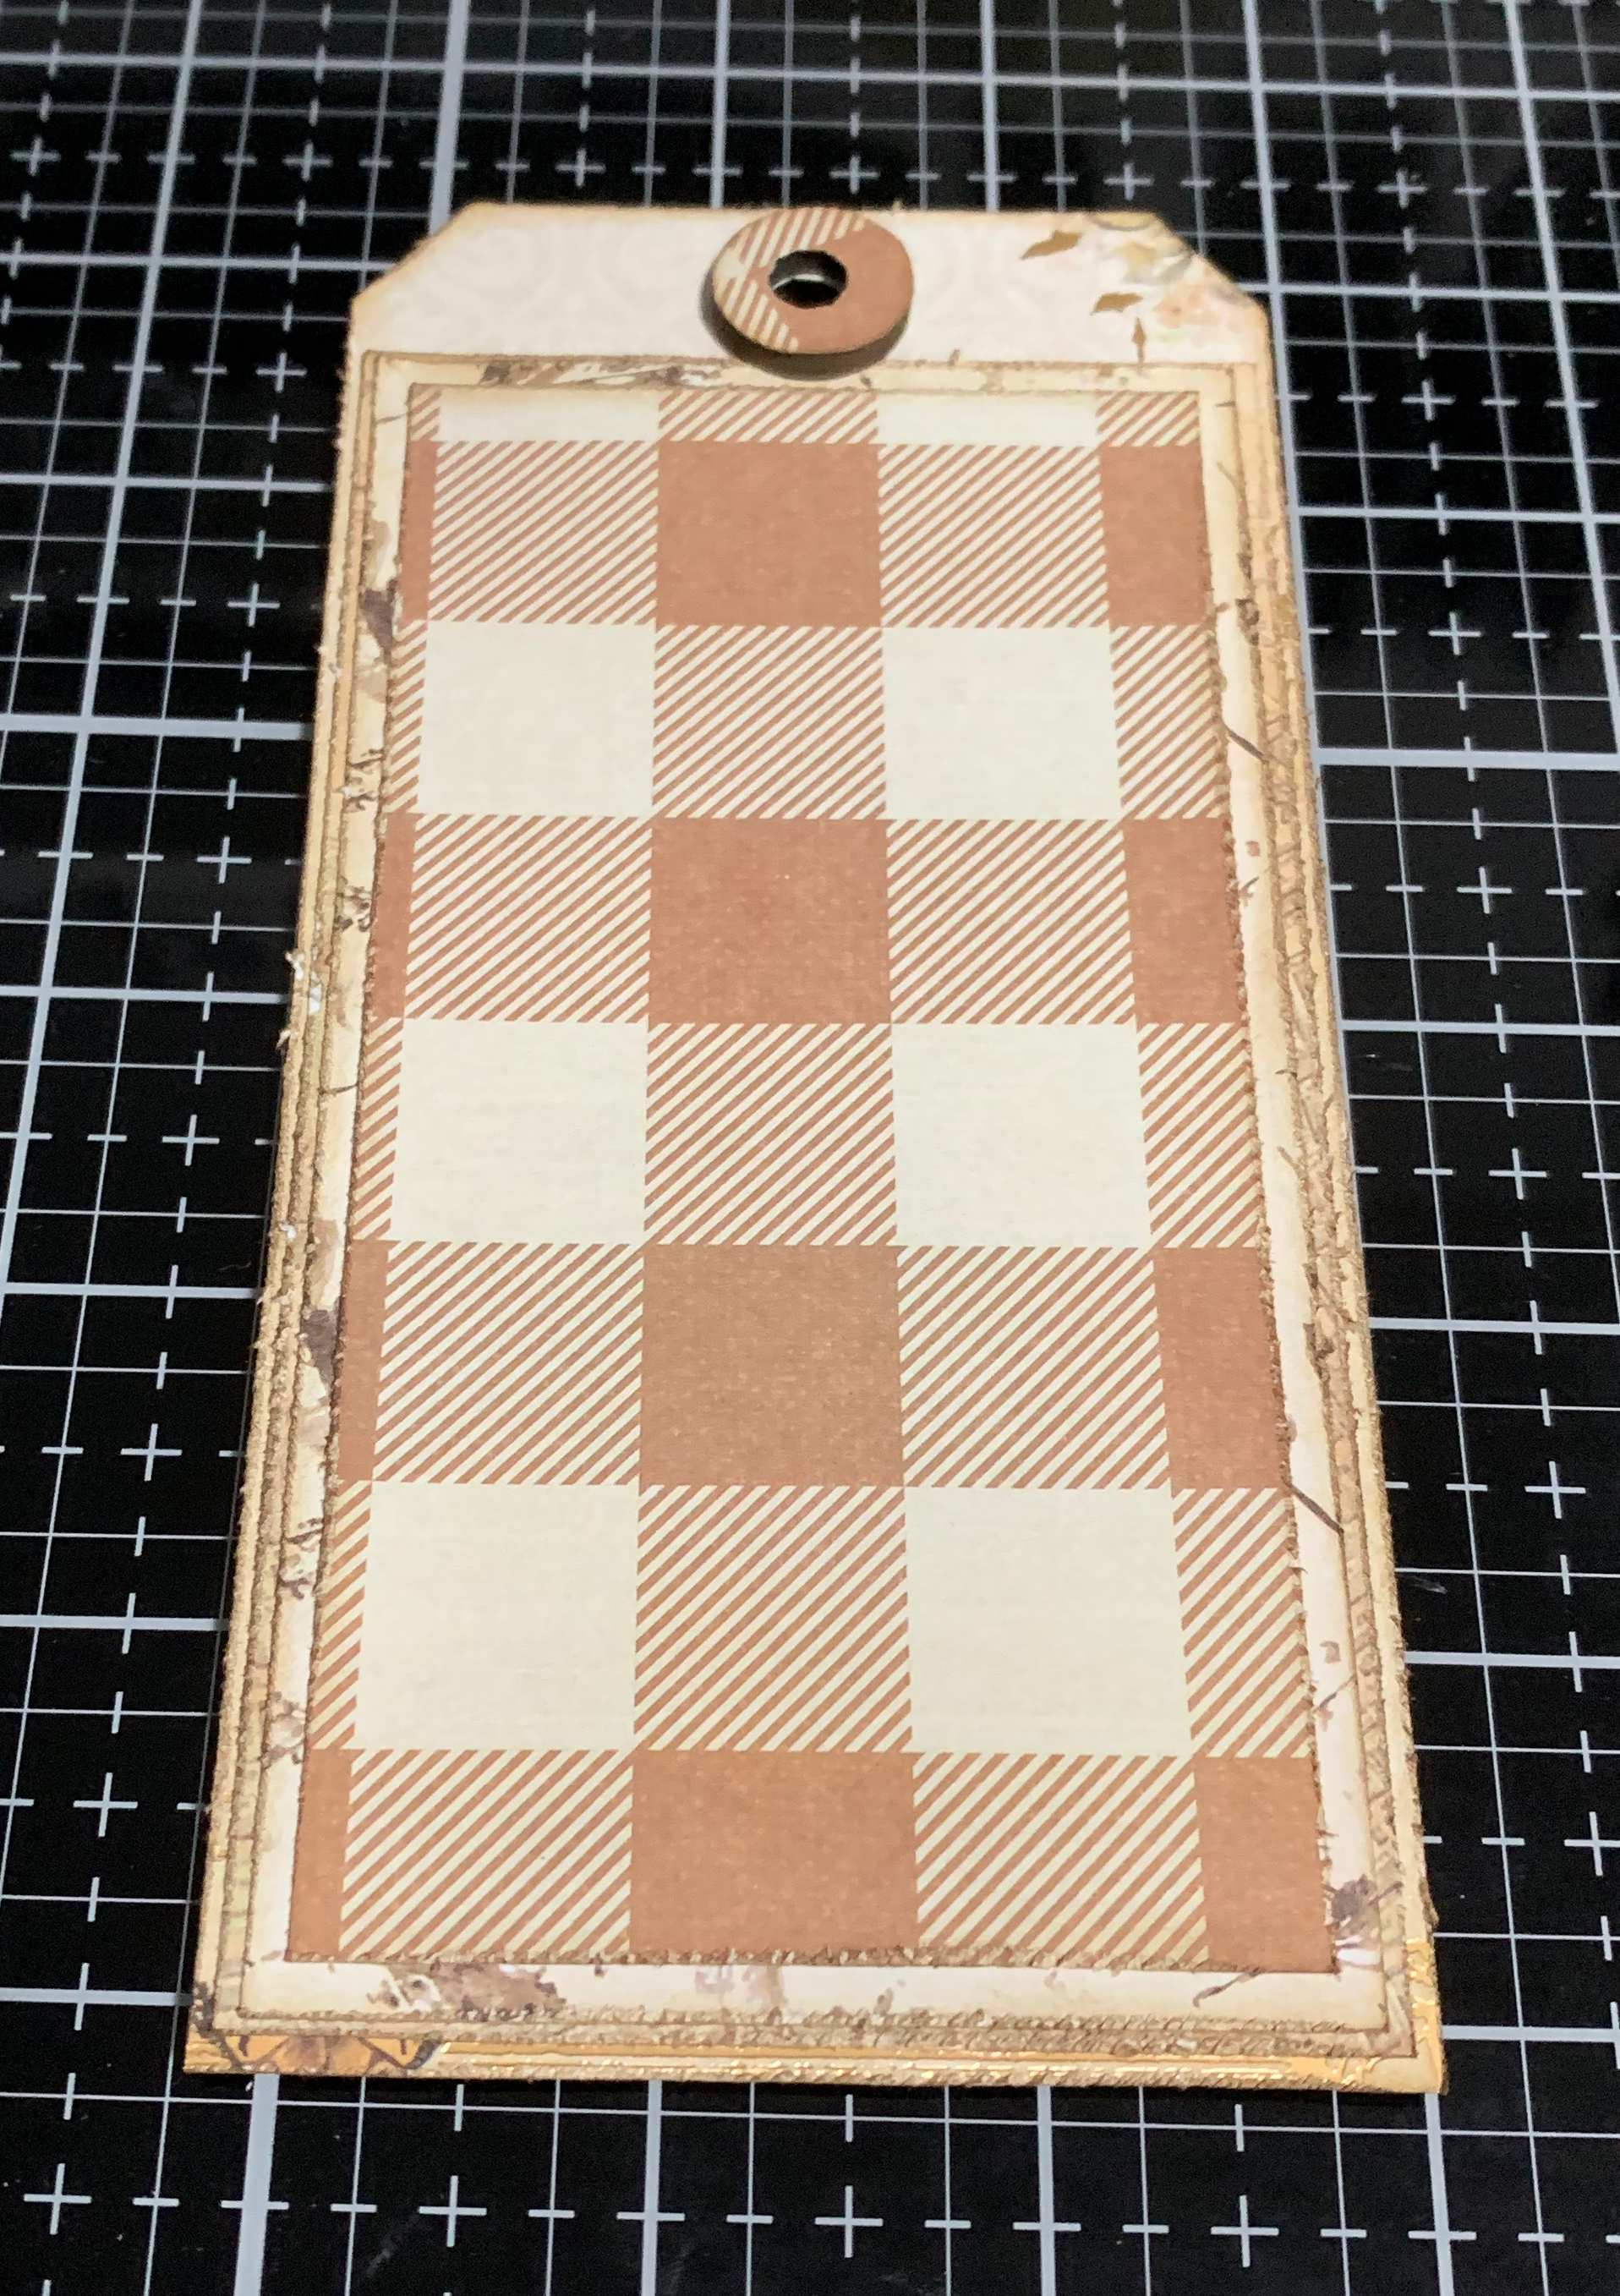 Step 10 - scrapbooking a vintage Thankful Tag using Prima Marketing Autumn Sunset patterned paper